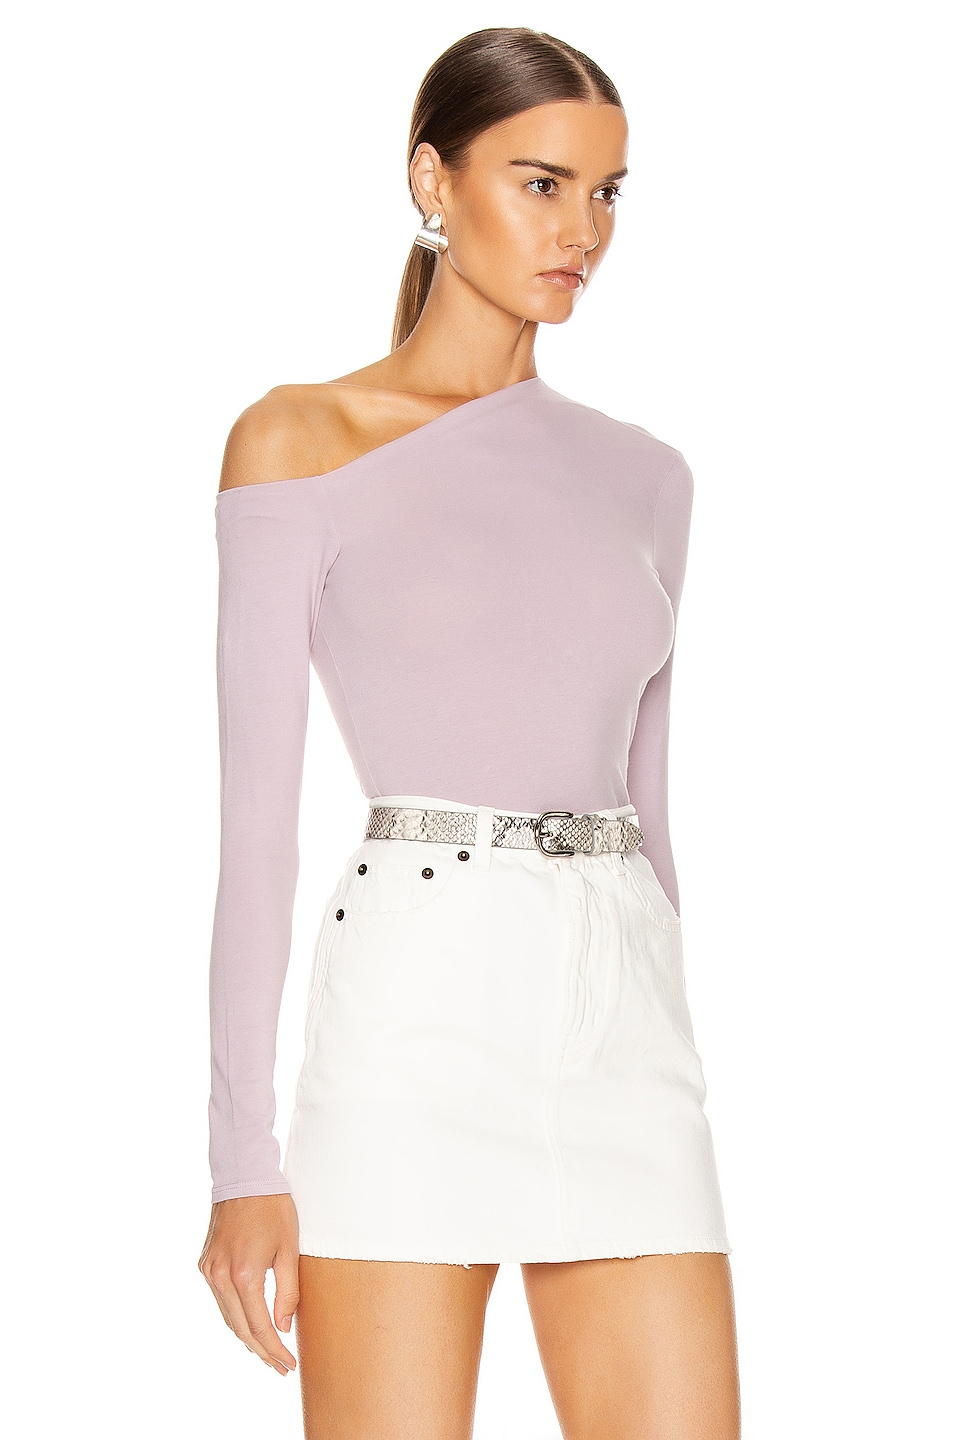 Image 2 of Enza Costa Angled Exposed Shoulder Long Sleeve Top in Pink Crystals